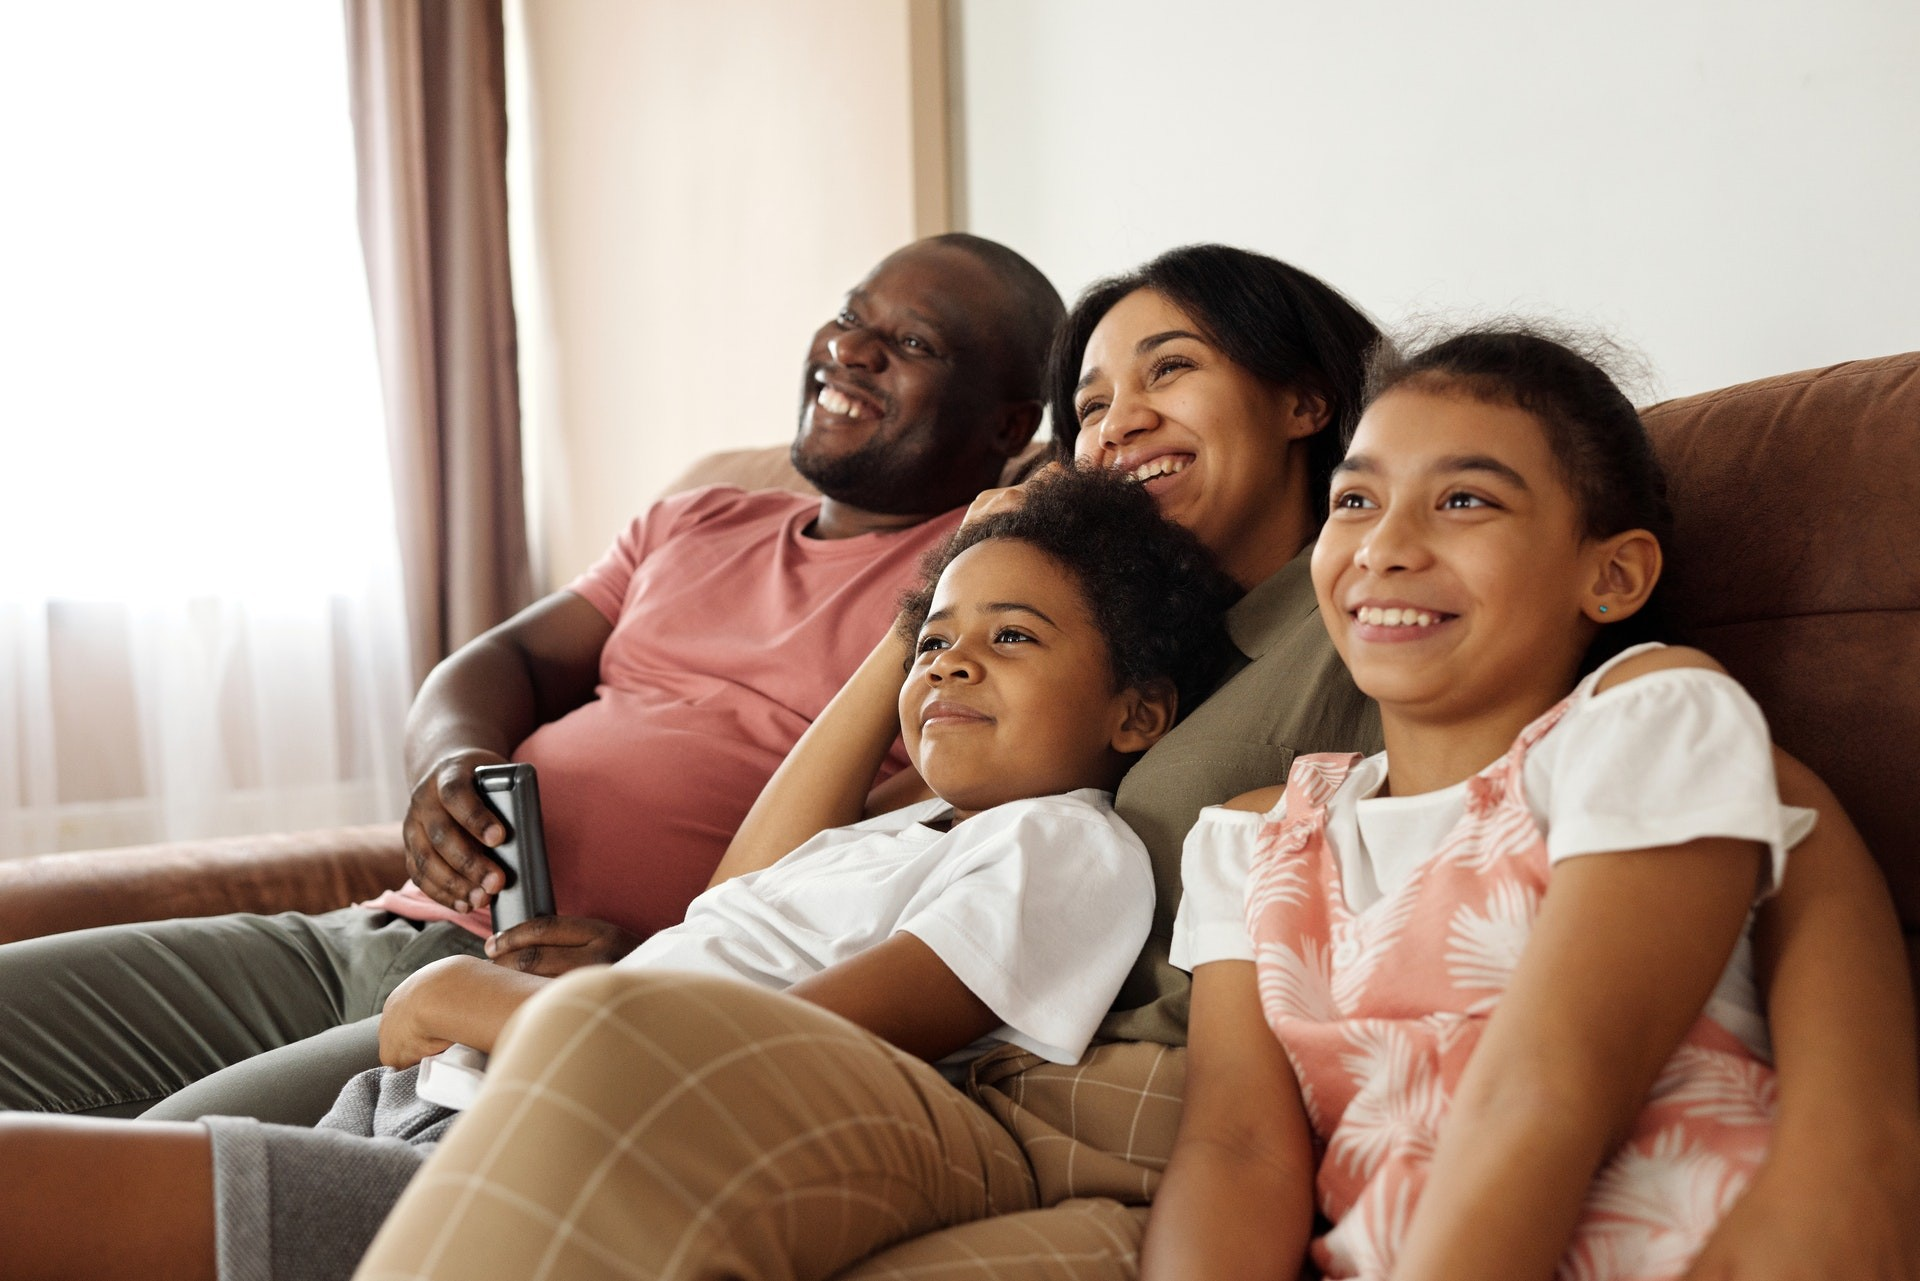 A family of four sits on a couch and smiles at a TV offscreen while they do earth day activities.